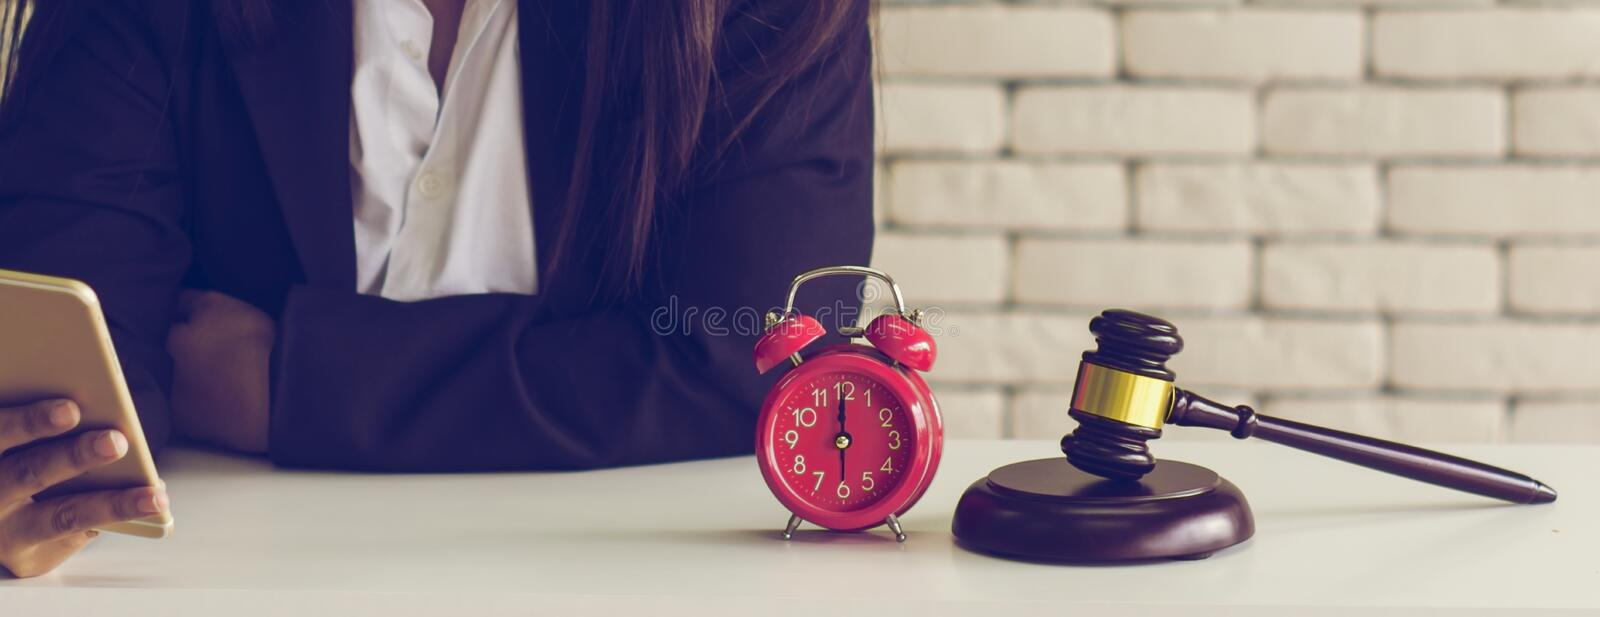 Female auctioneer controls,check list online auction winners,With retro alarm clock and golden brown wooden hammer placed on royalty free stock photo